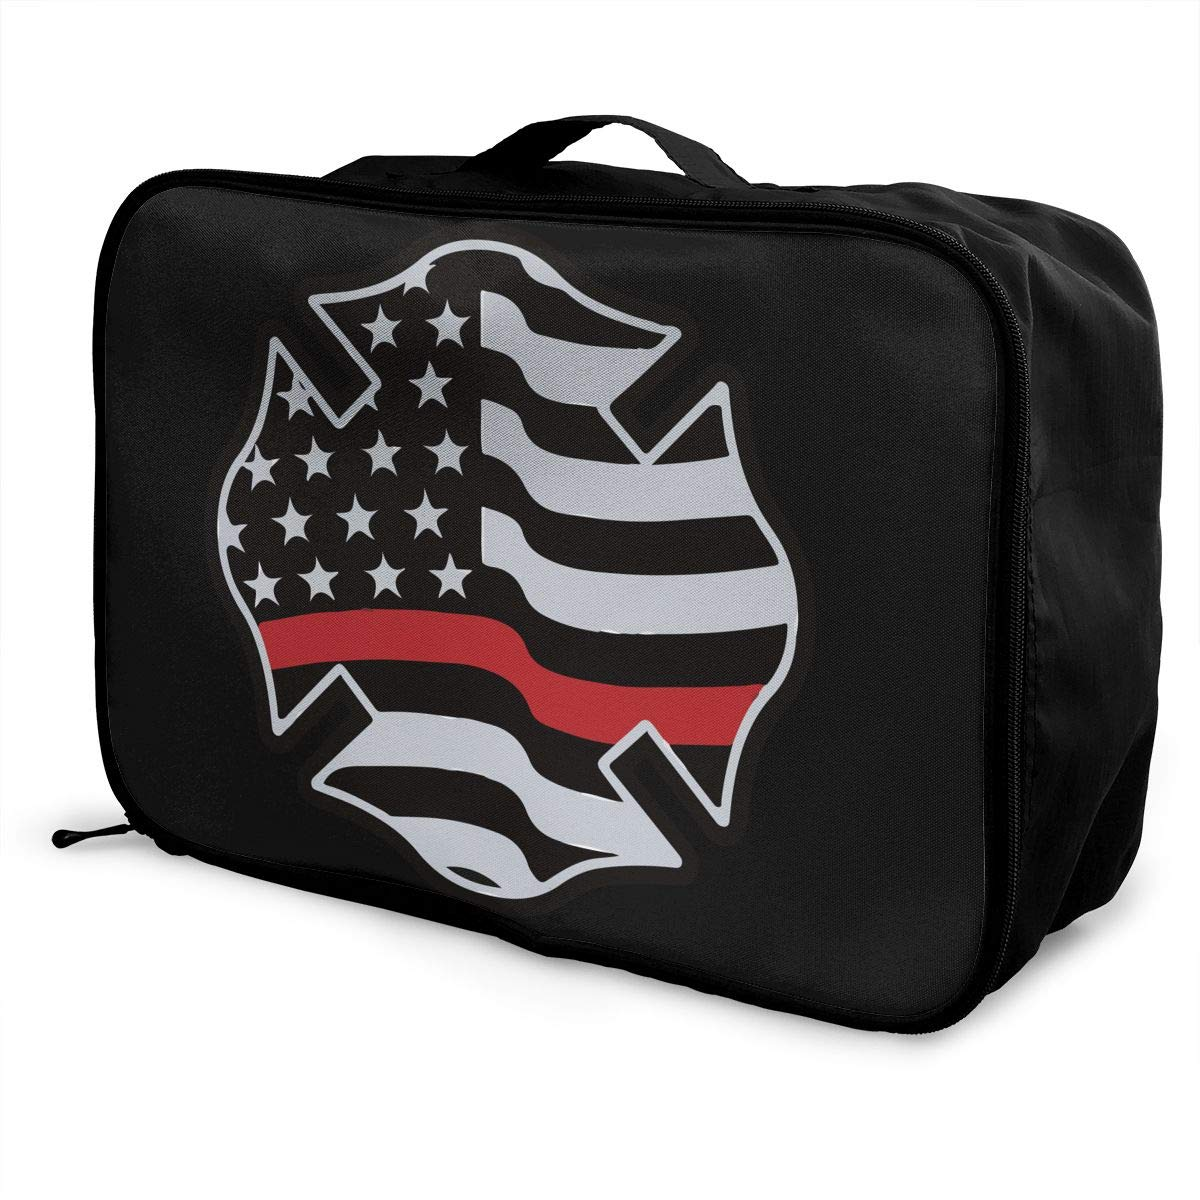 YueLJB Firefighter Lightweight Large Capacity Portable Luggage Bag Travel Duffel Bag Storage Carry Luggage Duffle Tote Bag